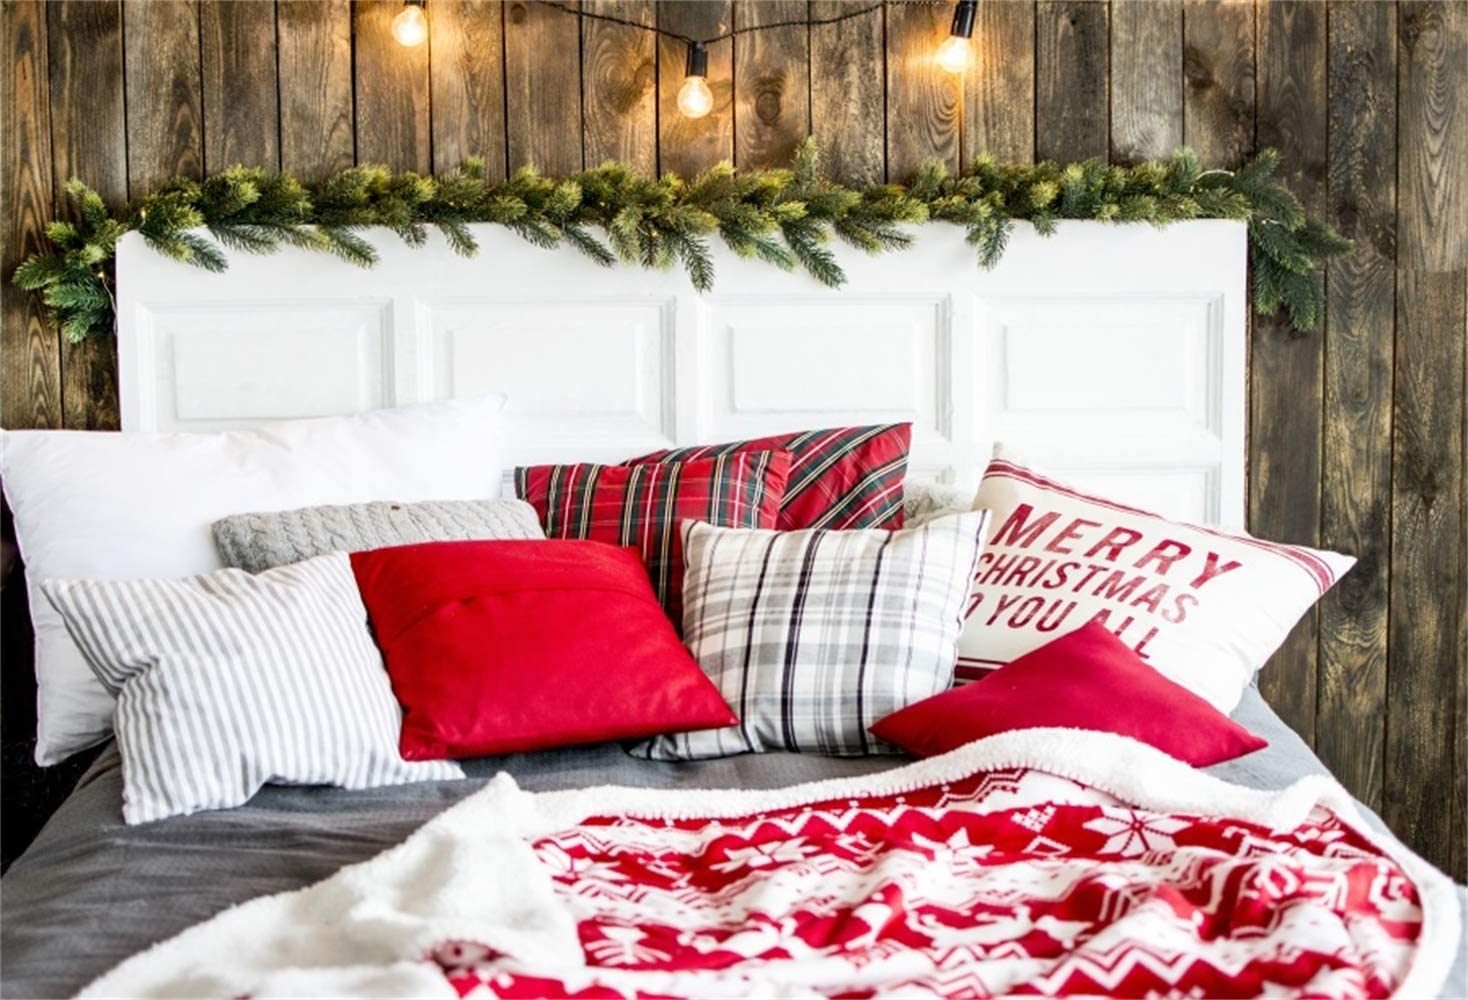 Laeacco Christmassy Warm Bed White Wooden BedHead Merry Christmas to You All Pillow Backdrop Vinyl 7x5ft Christmas Background Child Kids Adult Portrait Shoot Xmas Party Banner Studio Props